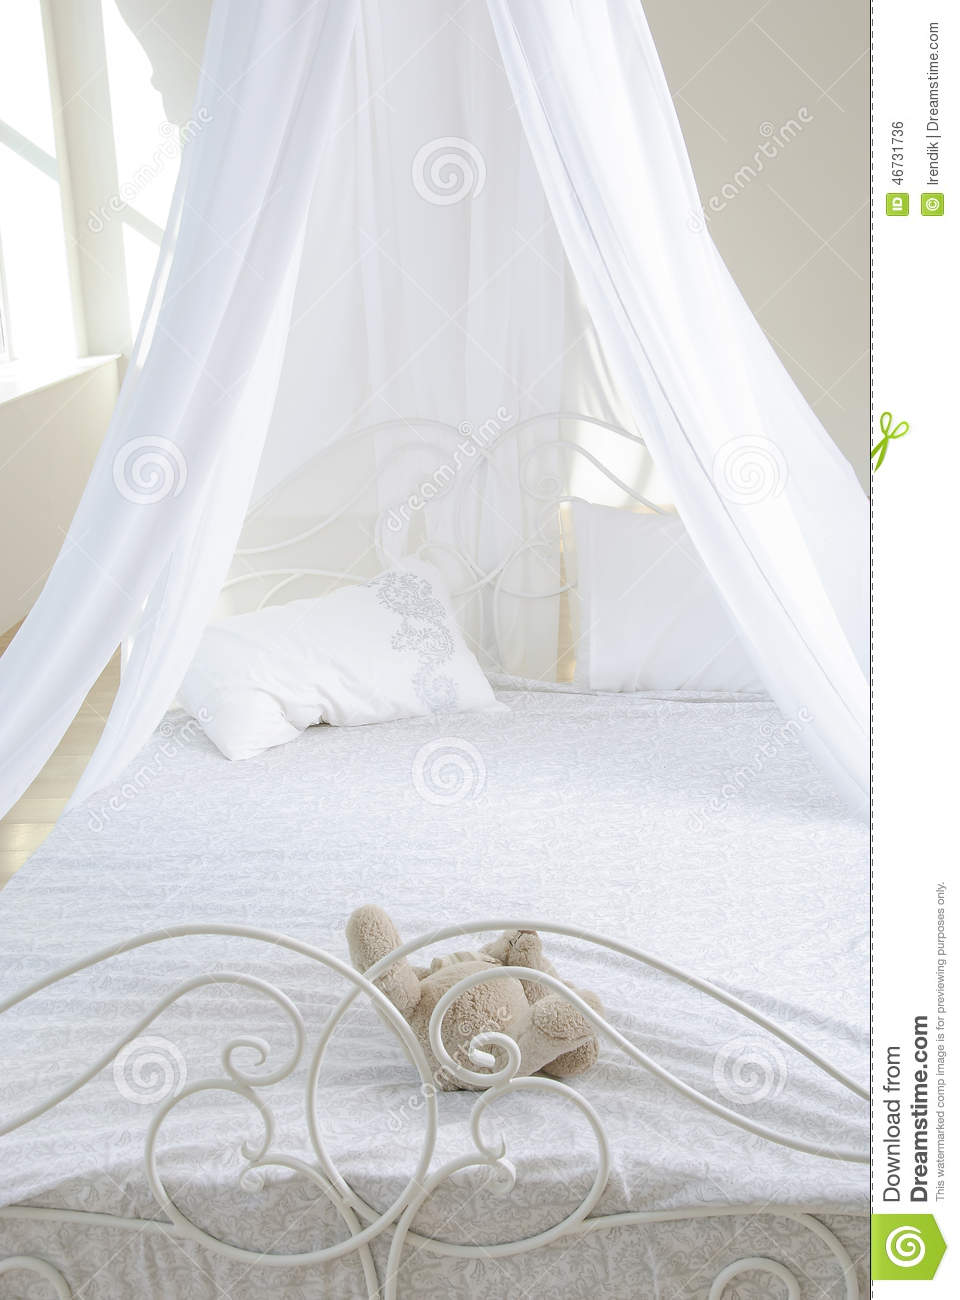 Old Fashioned Bedroom With Iron Frame Bed Stock Photo